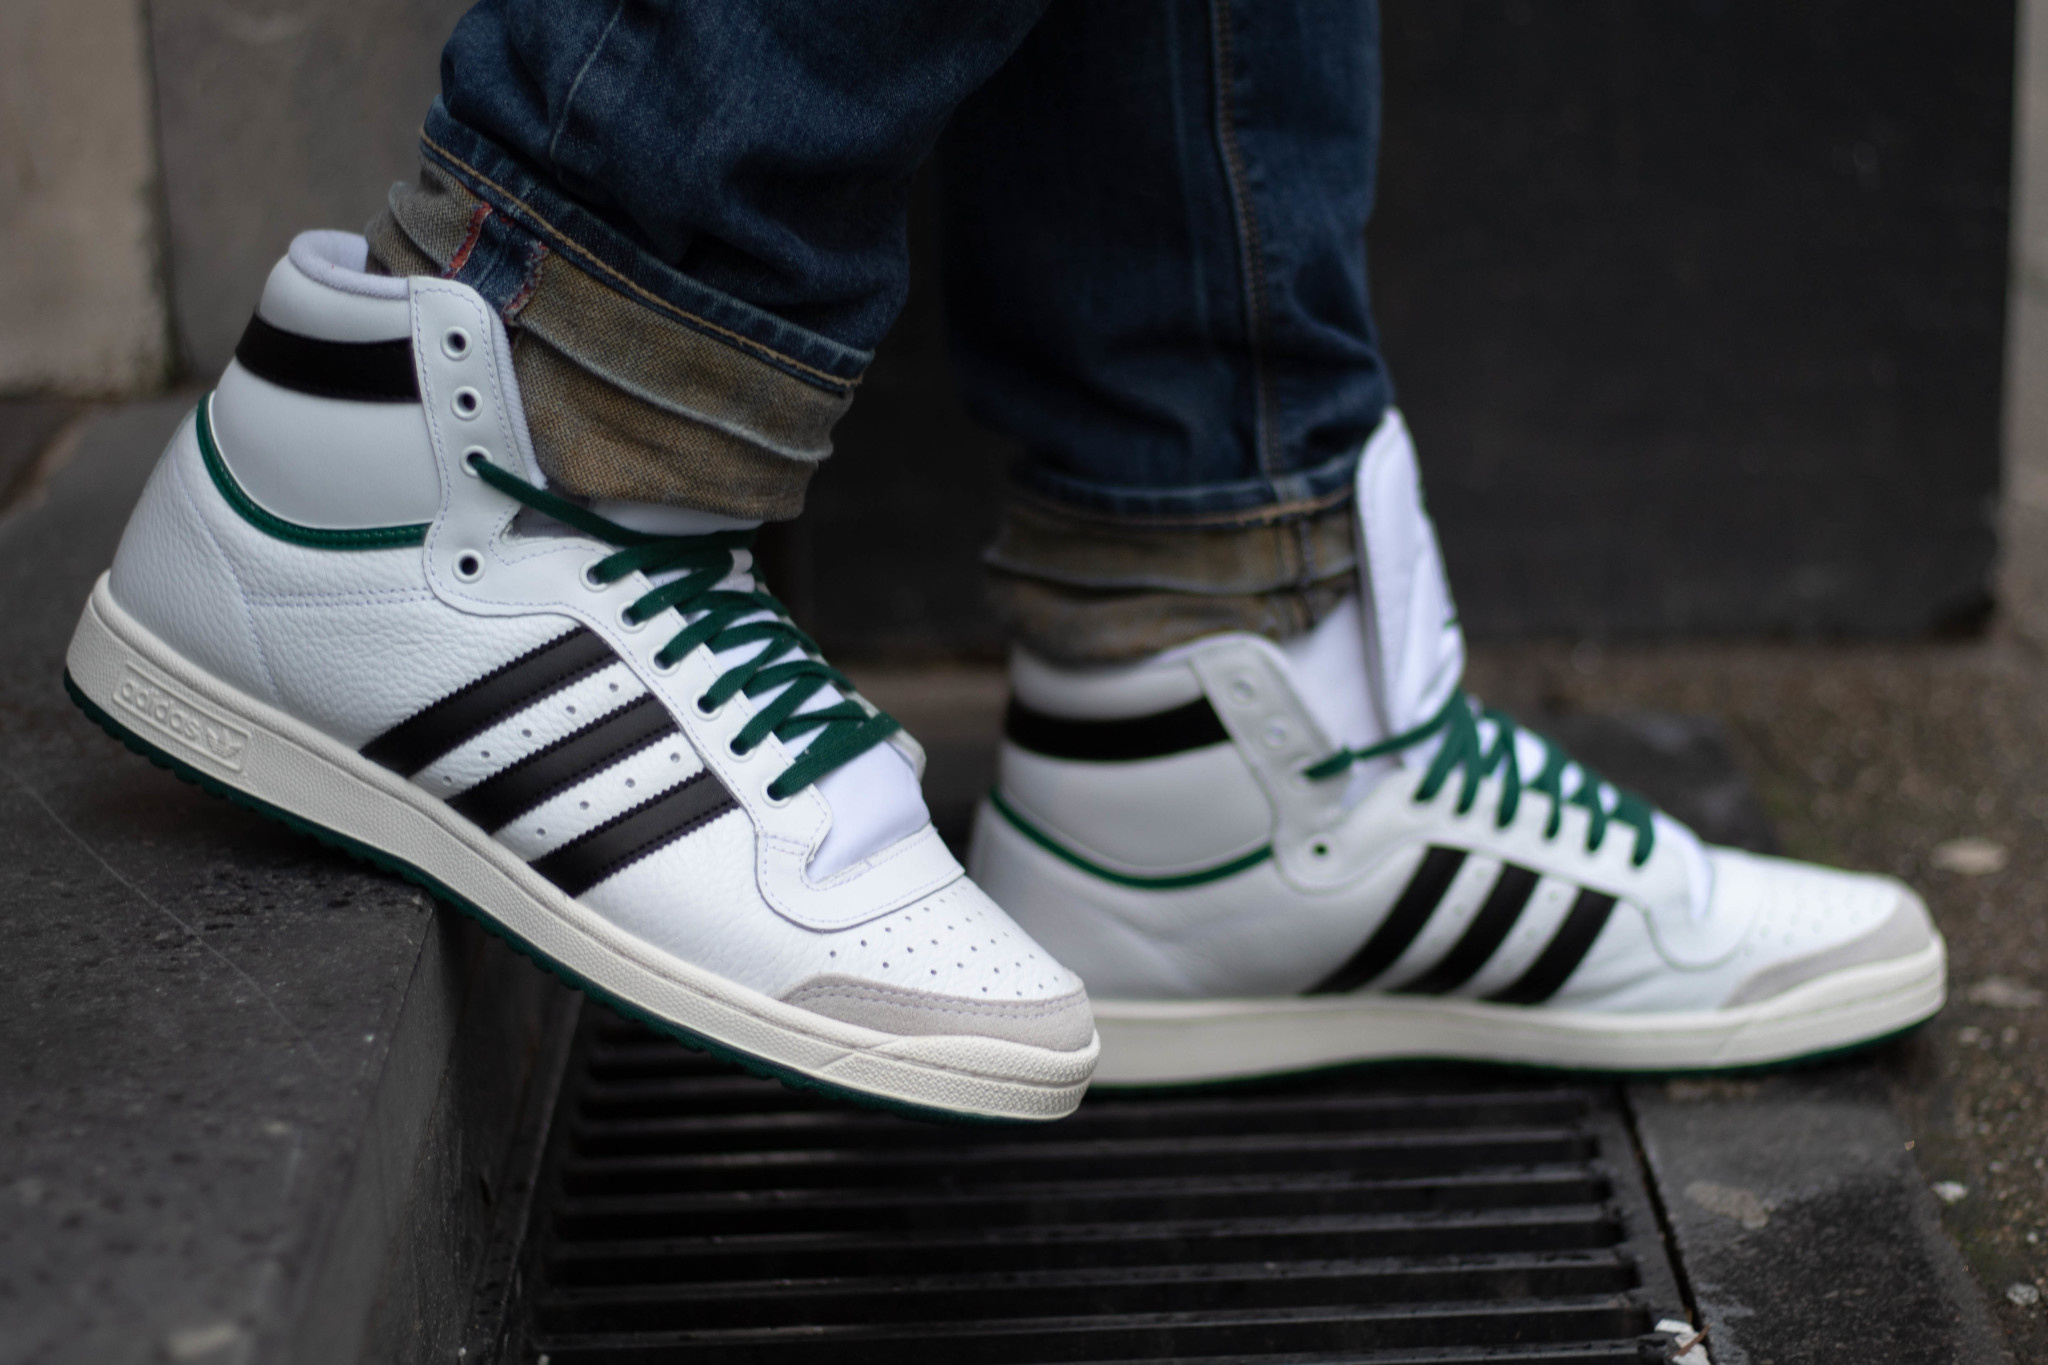 ADIDAS TOP TEN Ftwwht/ Cblack/ Green